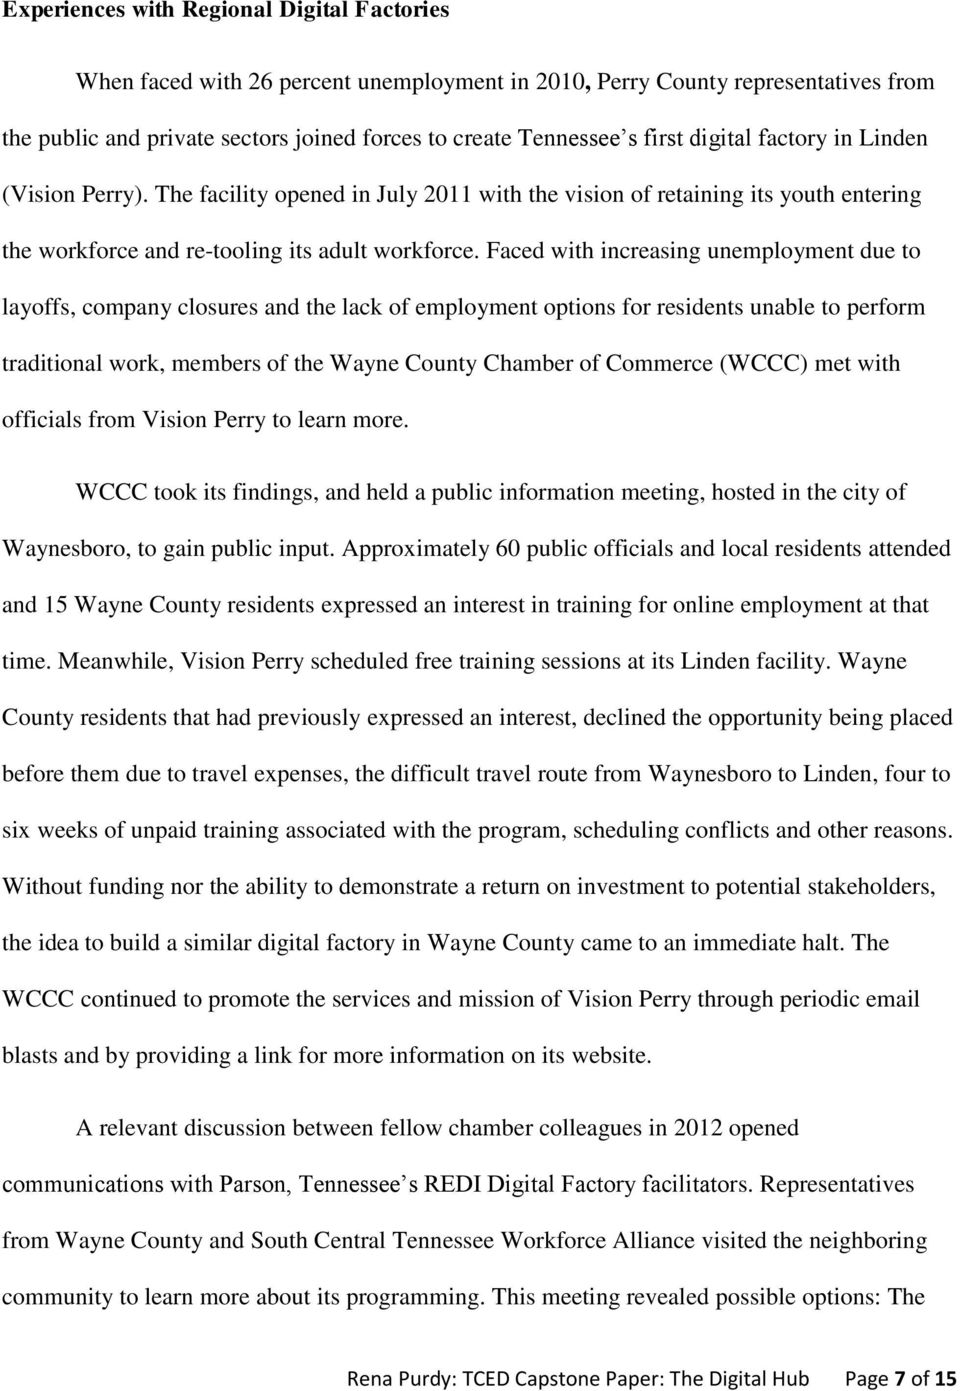 Faced with increasing unemployment due to layoffs, company closures and the lack of employment options for residents unable to perform traditional work, members of the Wayne County Chamber of